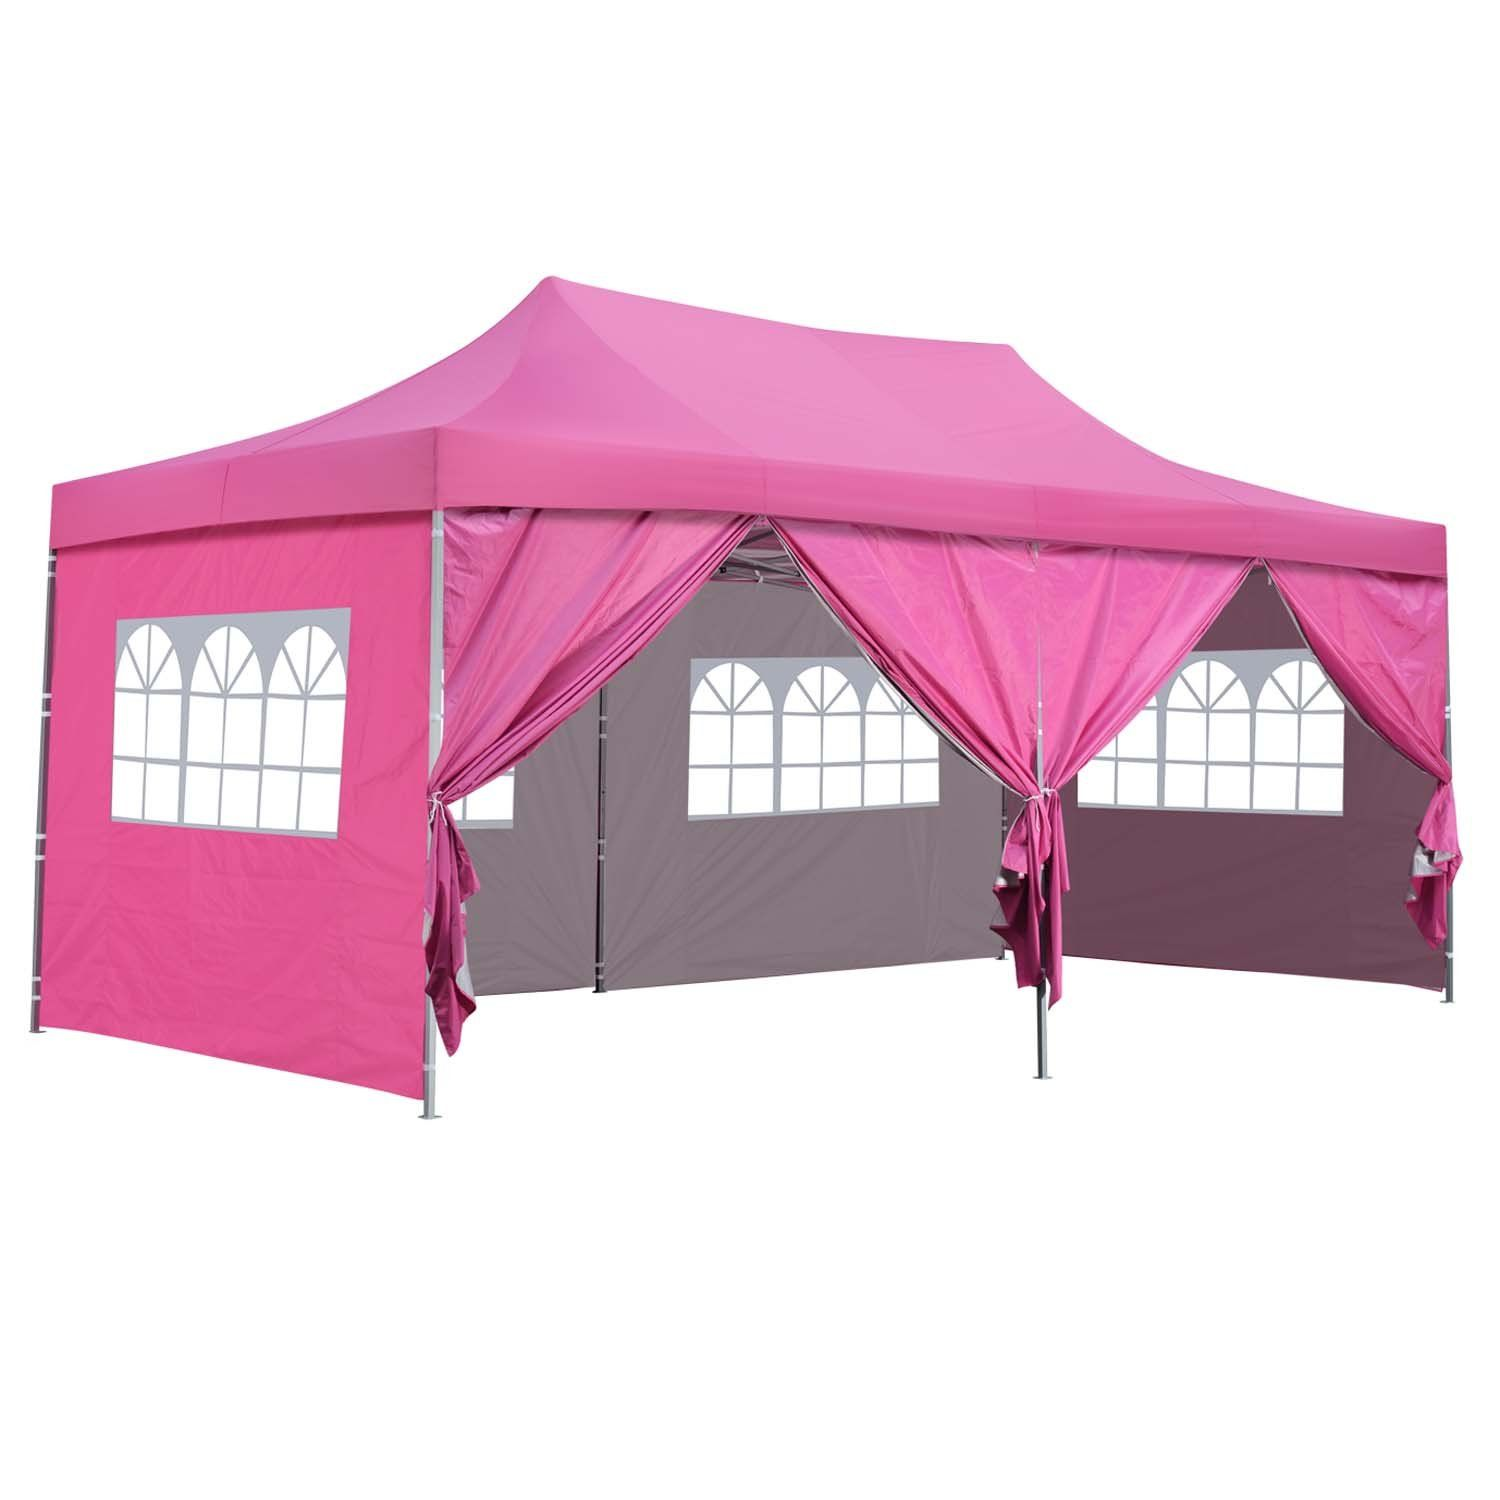 Outdoor Basic 10x20 Ft Pop Up Canopy Party Wedding Gazebo Tent Shelter With Removable Side Walls Pink 6 Walls More Info Co Gazebo Tent Gazebo Tent